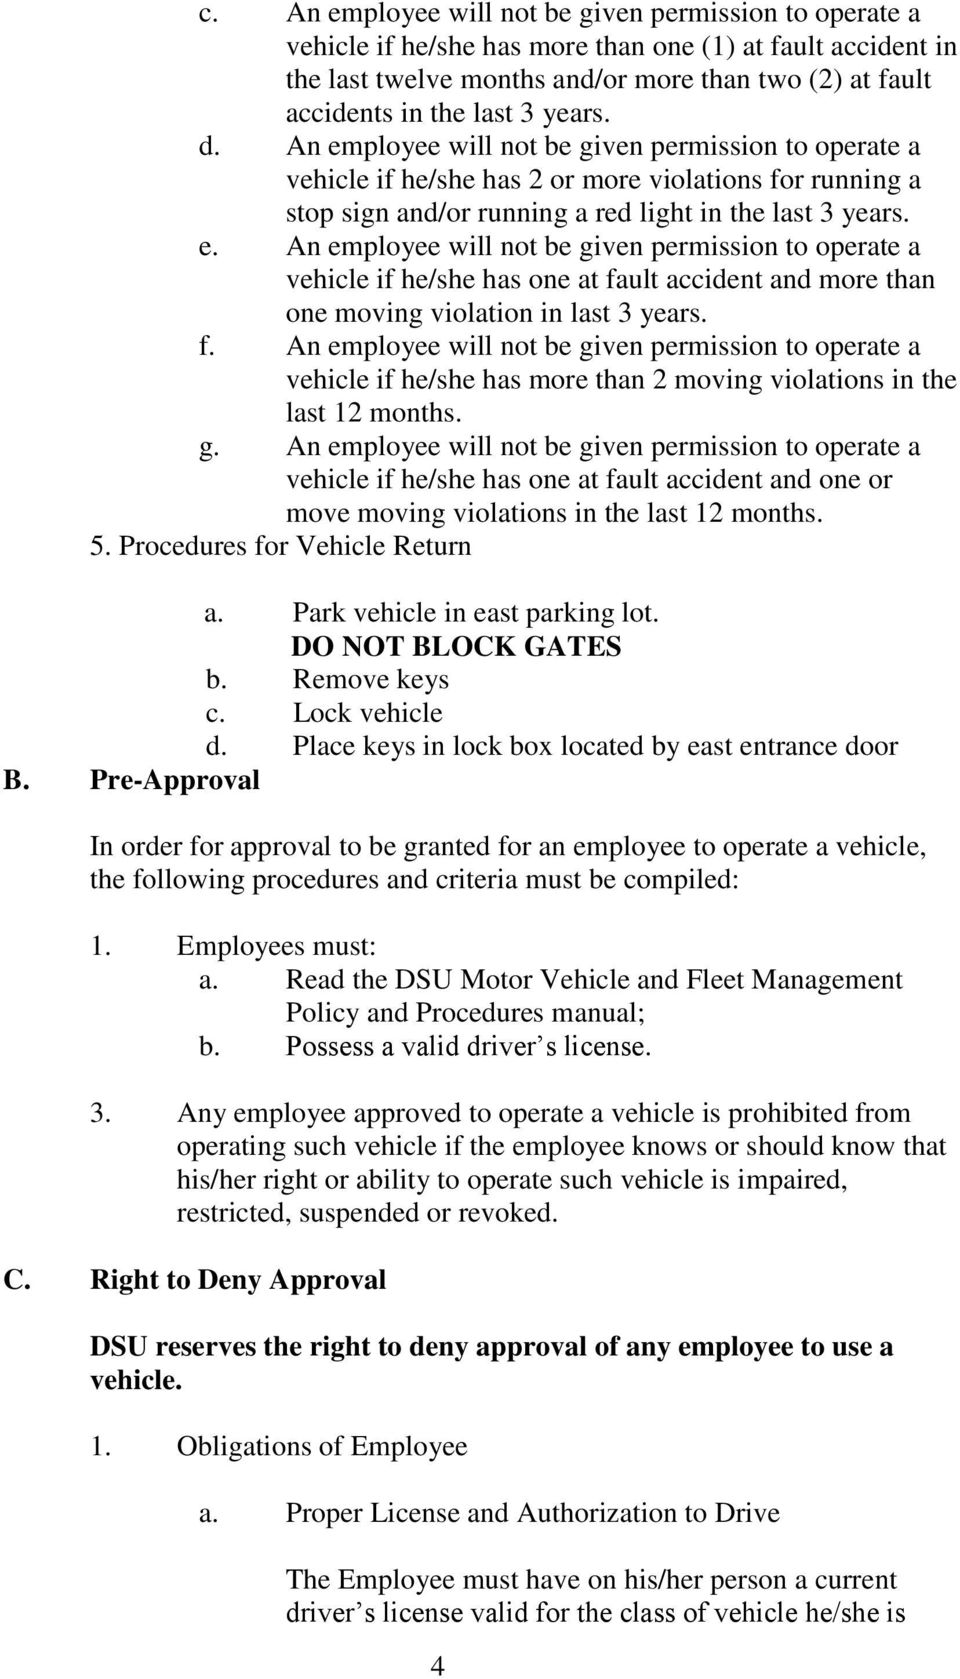 f. An employee will not be given permission to operate a vehicle if he/she has more than 2 moving violations in the last 12 months. g. An employee will not be given permission to operate a vehicle if he/she has one at fault accident and one or move moving violations in the last 12 months.